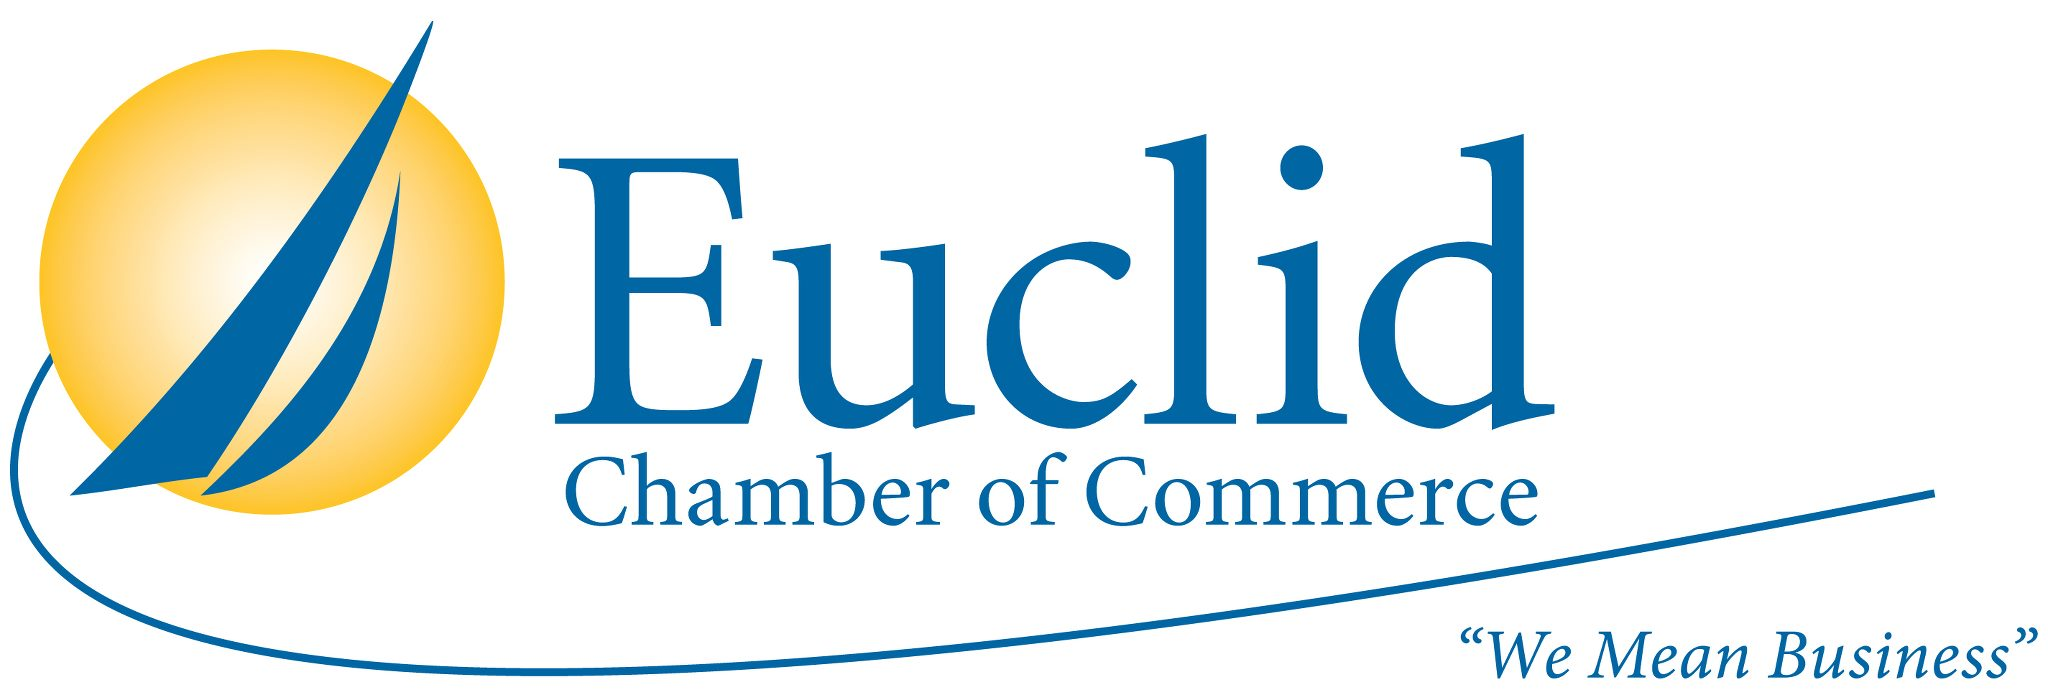 Euclid Chamber of Commerce logo